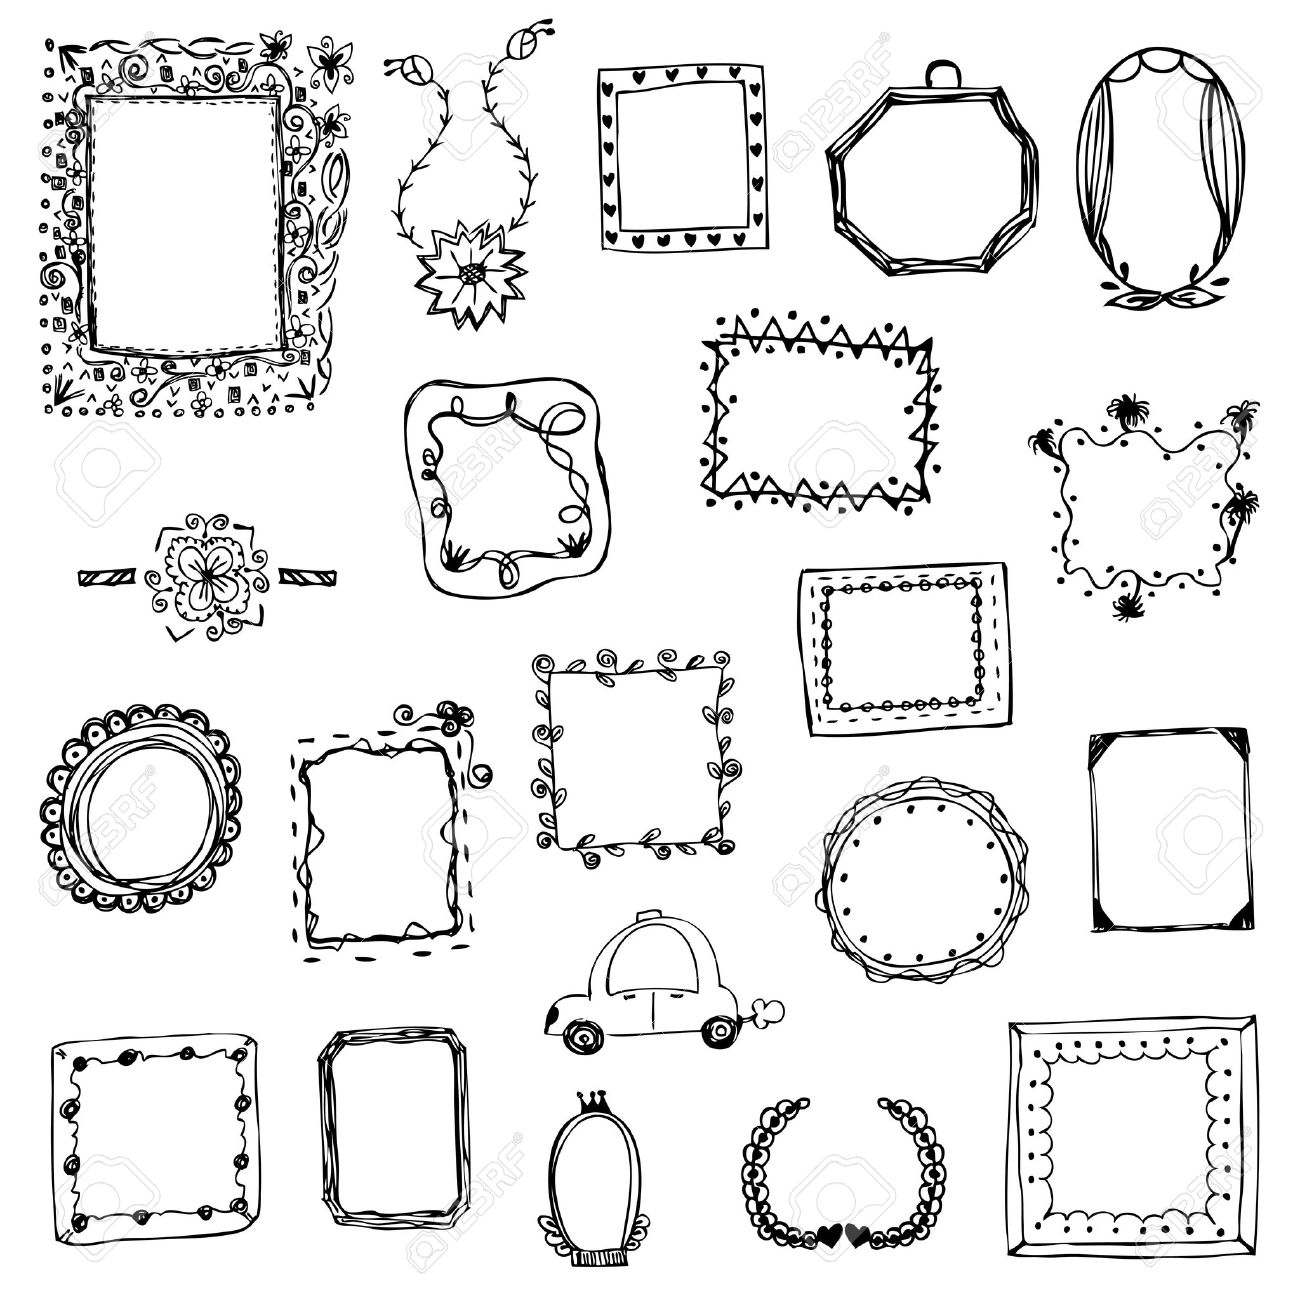 Free Hand Drawing Of Picture Frame Vector Illustration On White ...